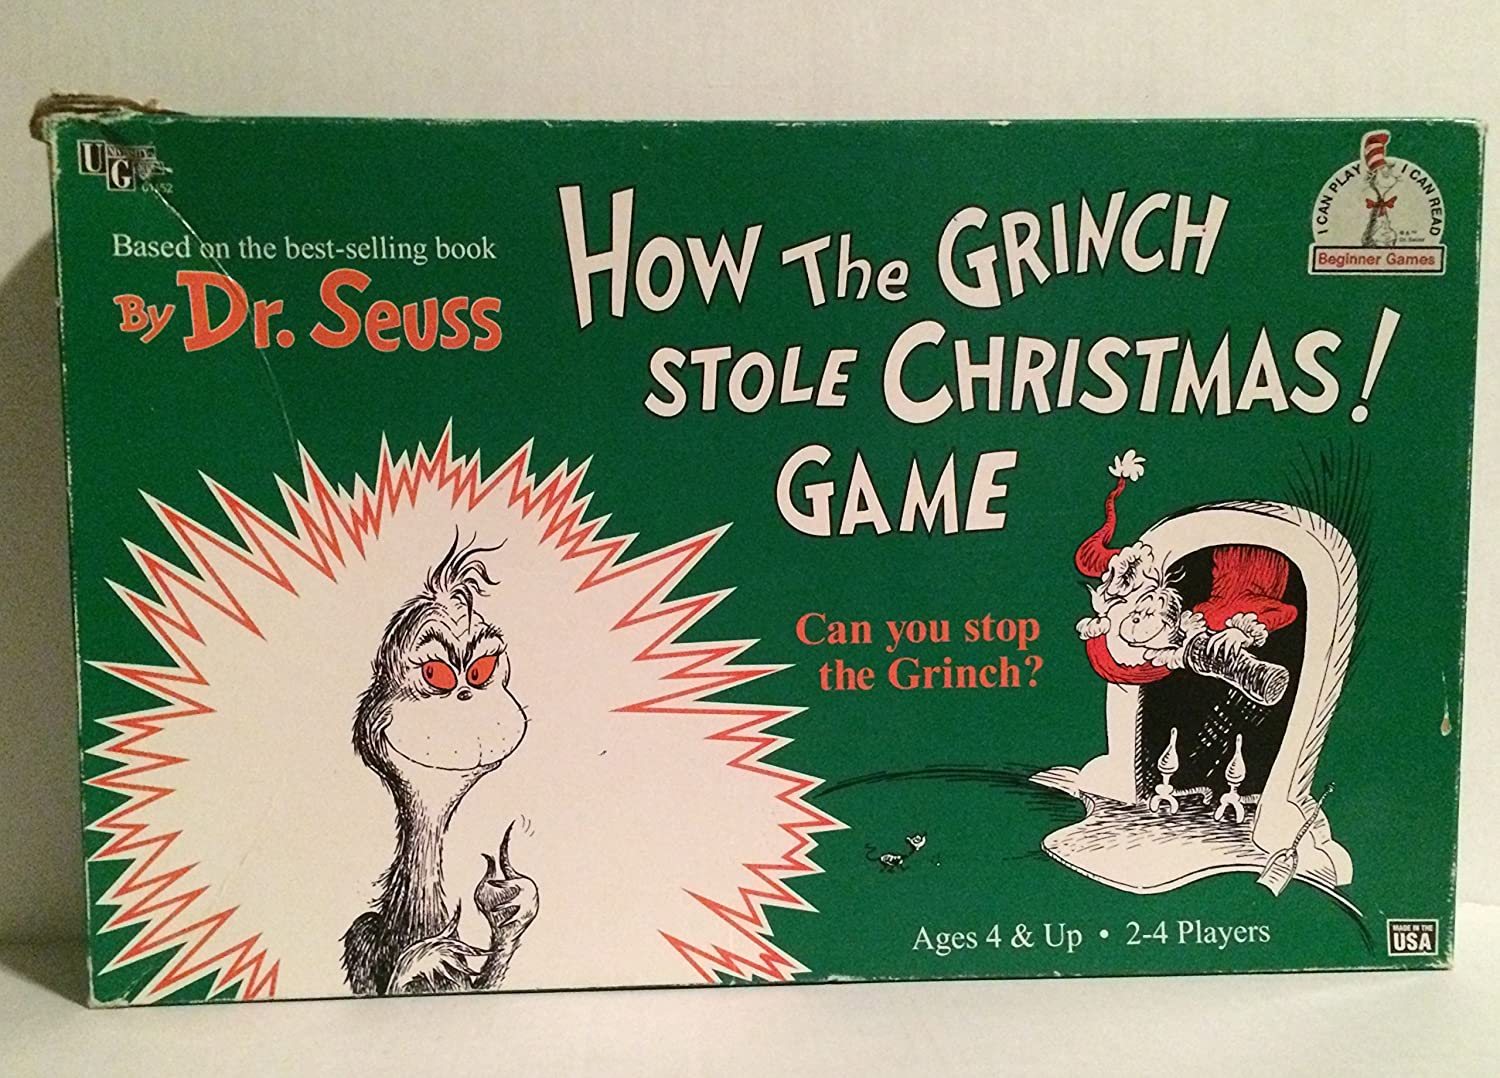 amazoncom how the grinch stole christmas game toys games - How The Grinch Stole Christmas Games